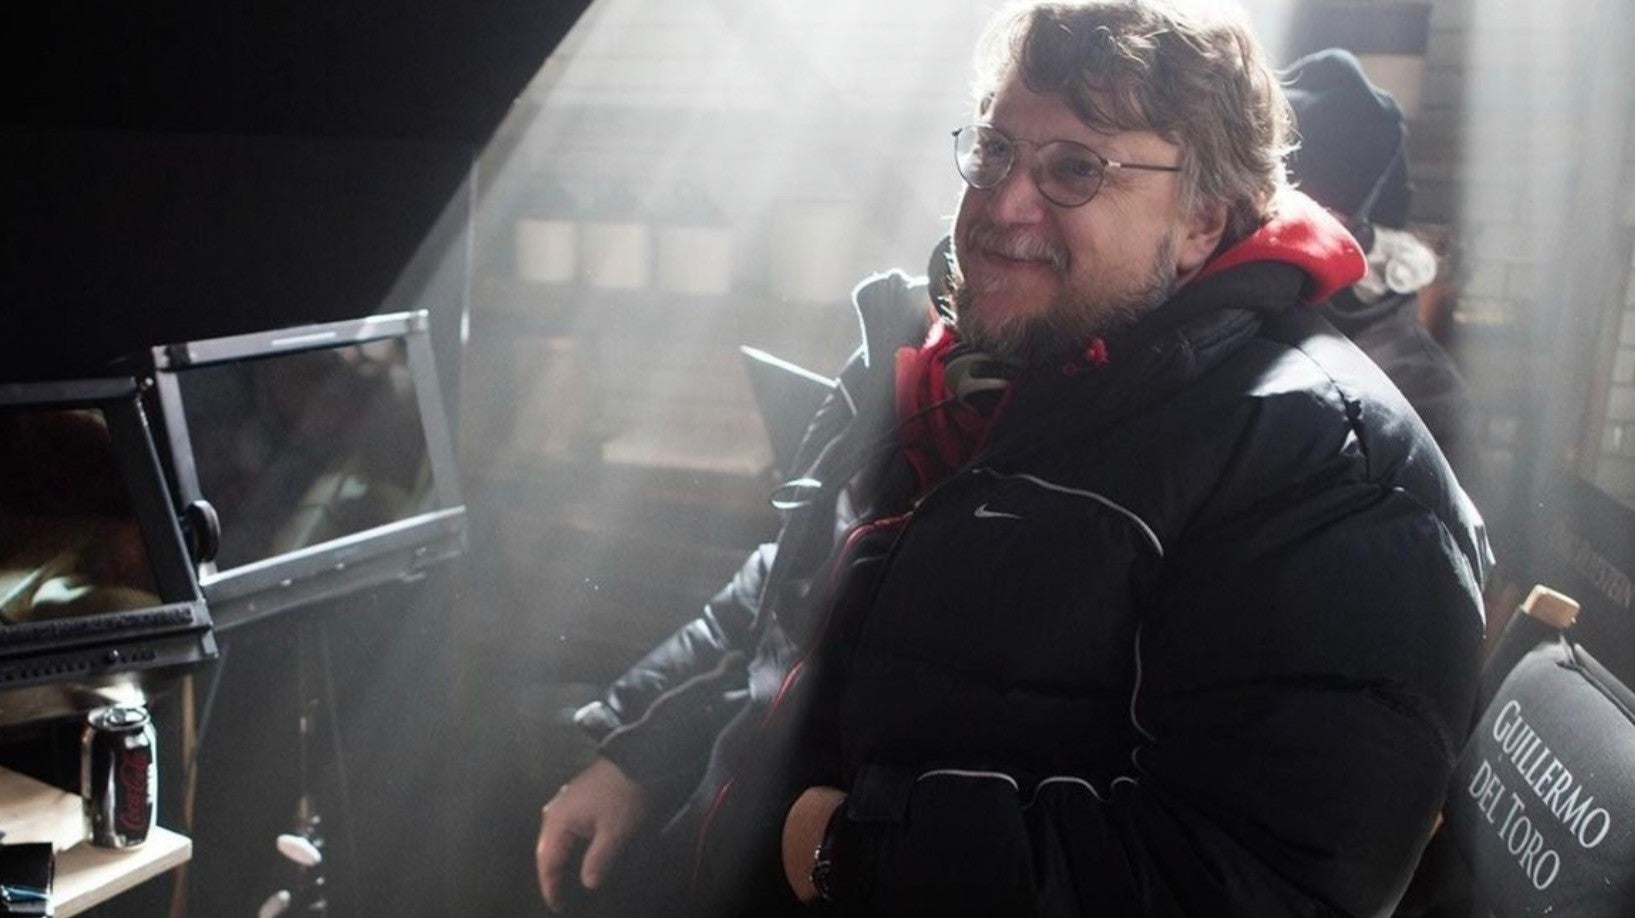 Guillermo Del Toro Is Assembling An Impressive Cast For His Follow-Up To The Shape Of Water